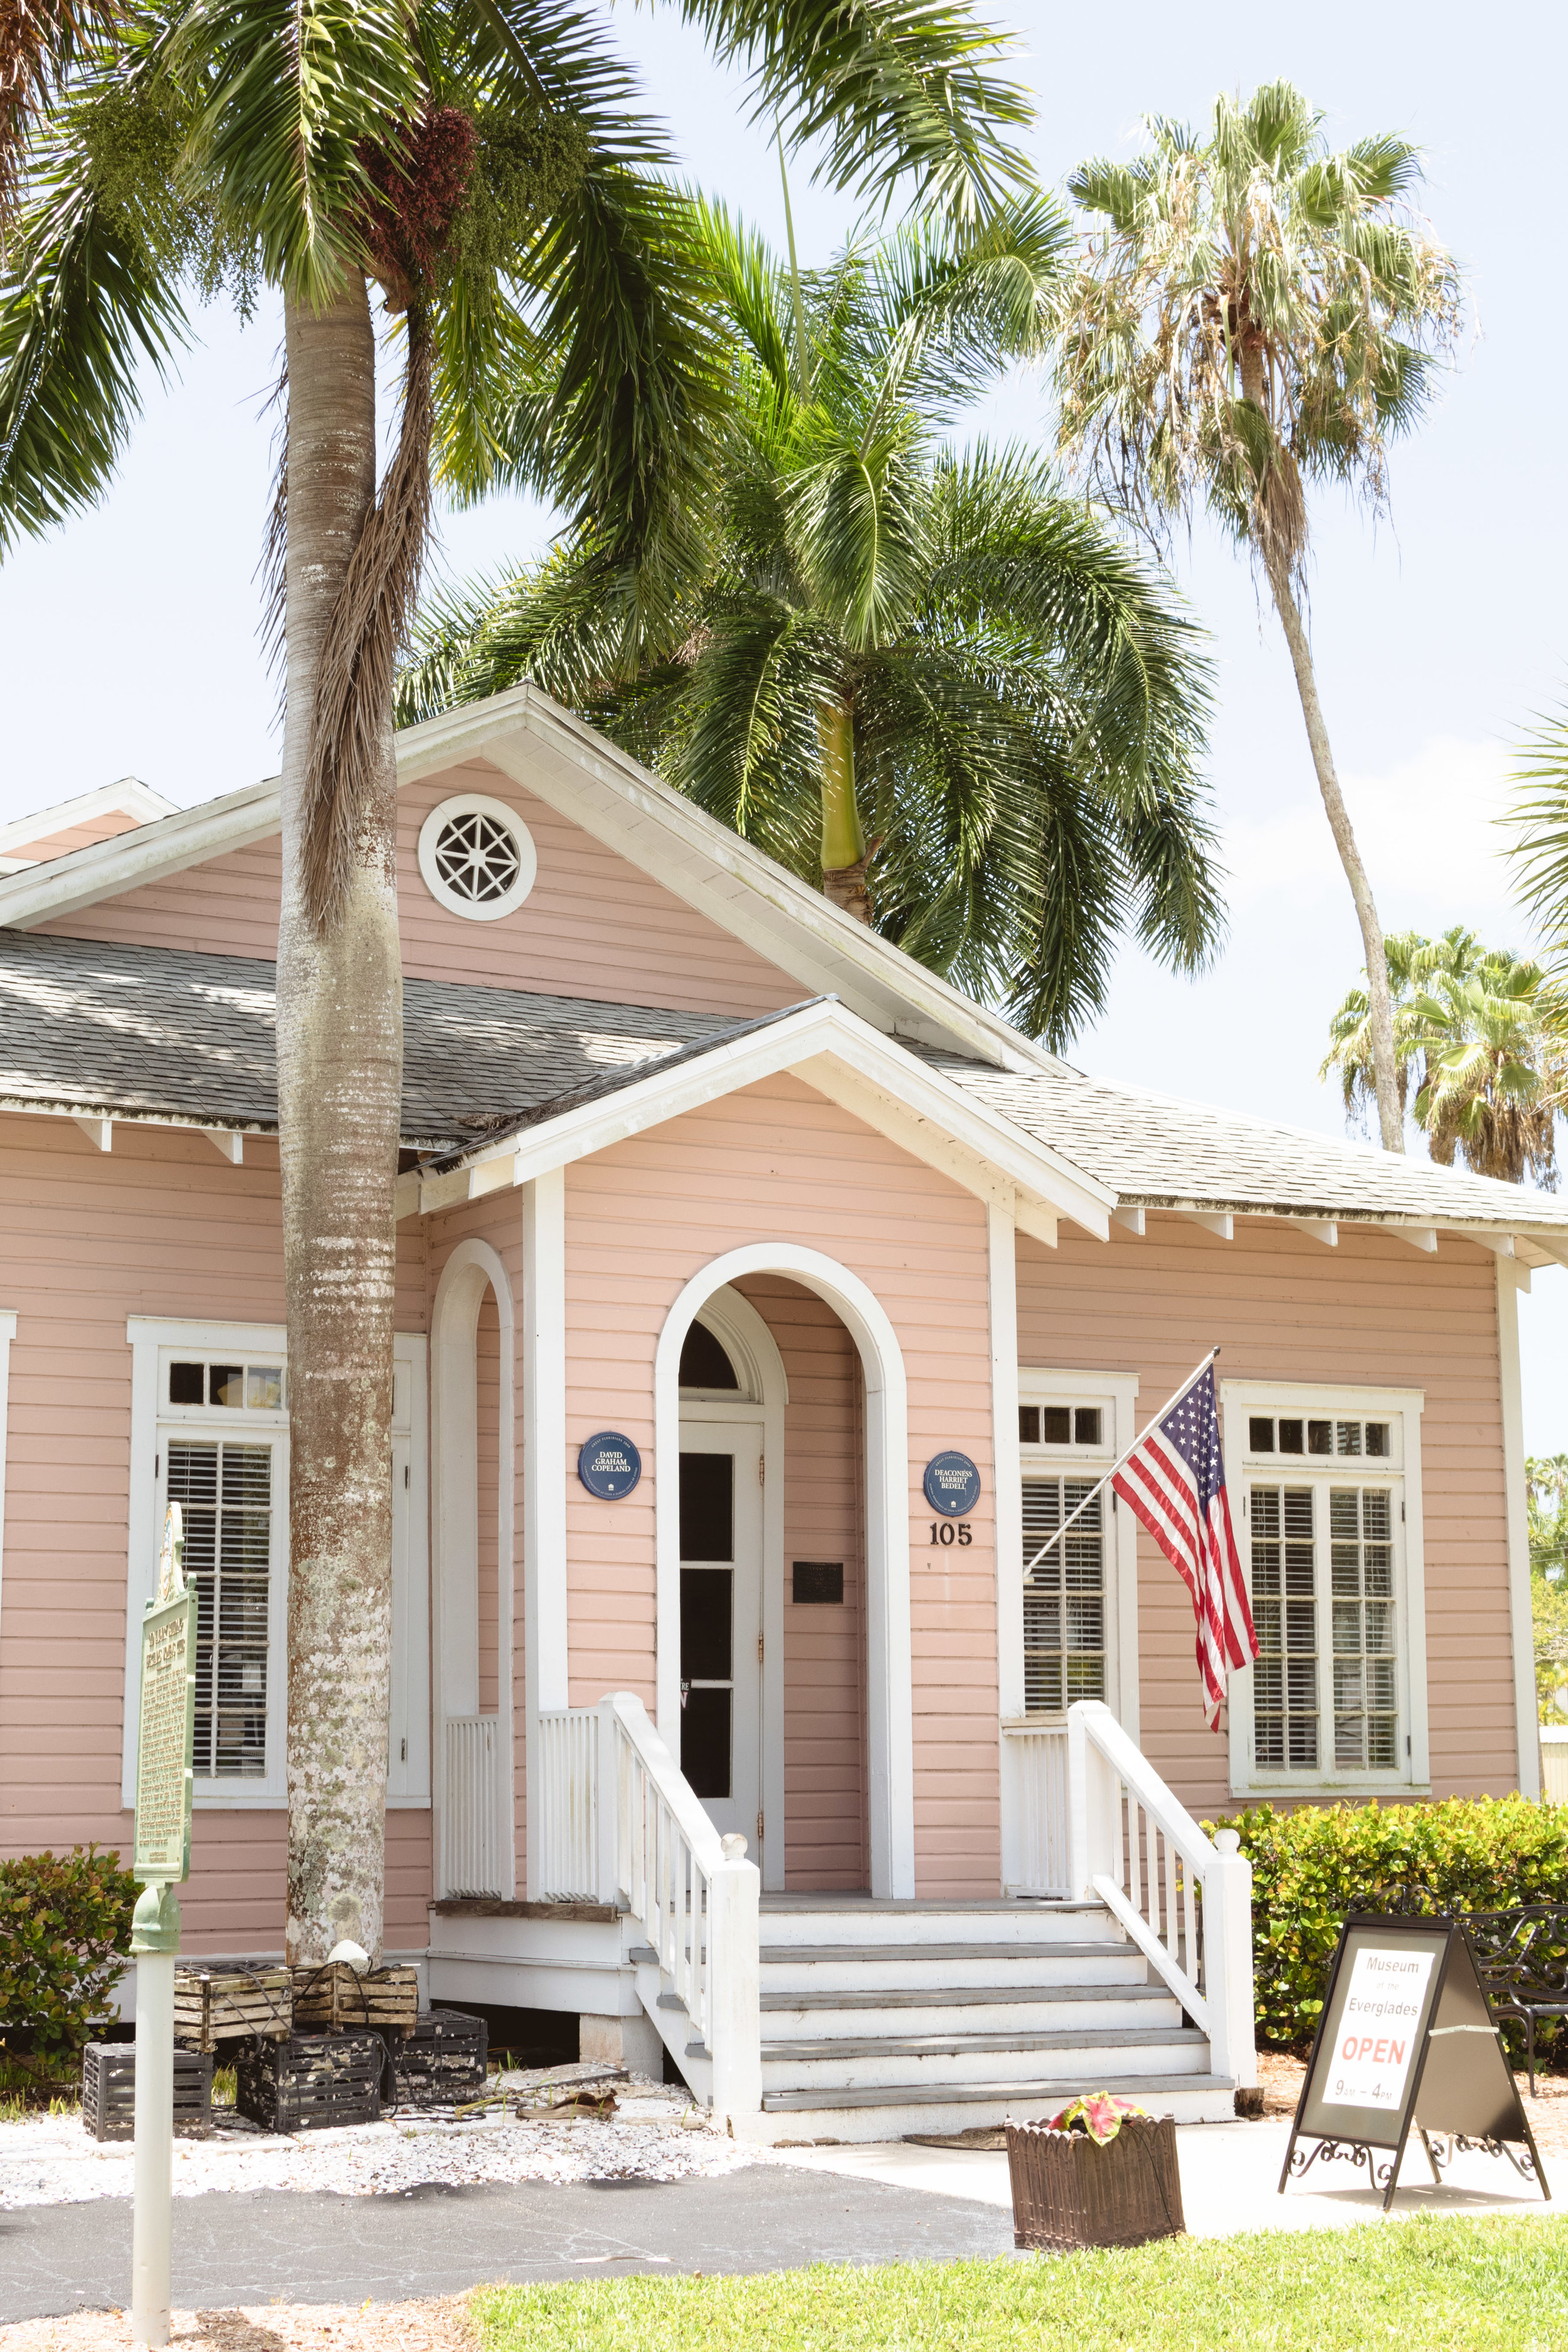 Museum of the Everglades - previously the Everglades Laundry building.